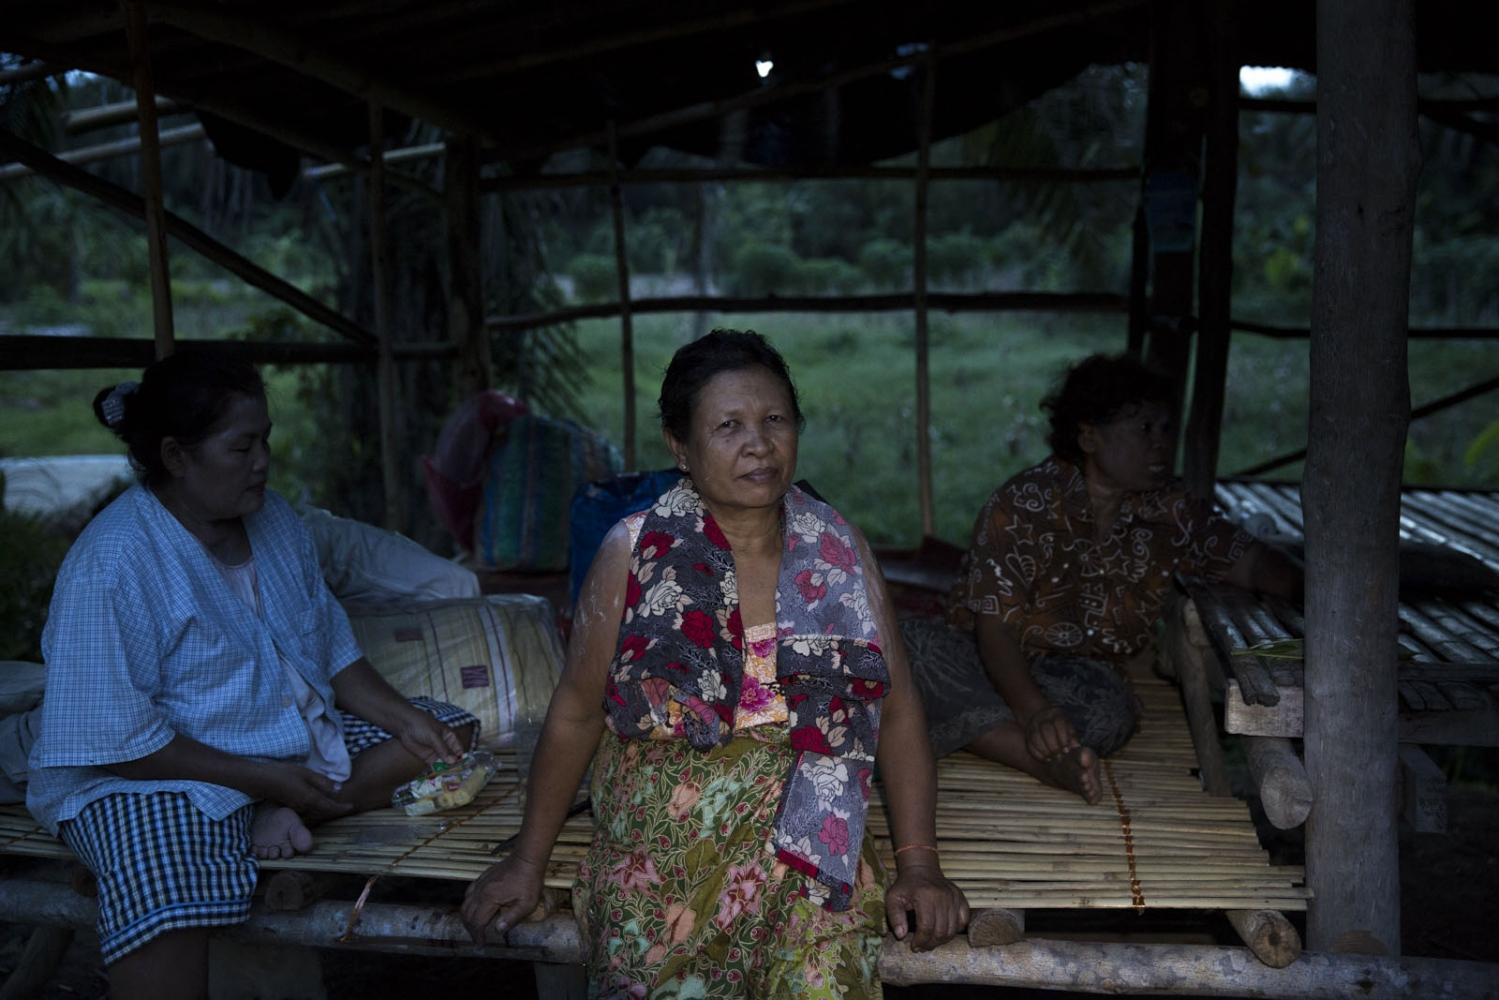 Sommay Sangsom, 62, sits in one of four security look out posts. The villagers take it in turns sleeping in the simple bamboo hut, sleeping 3-4 people per post.